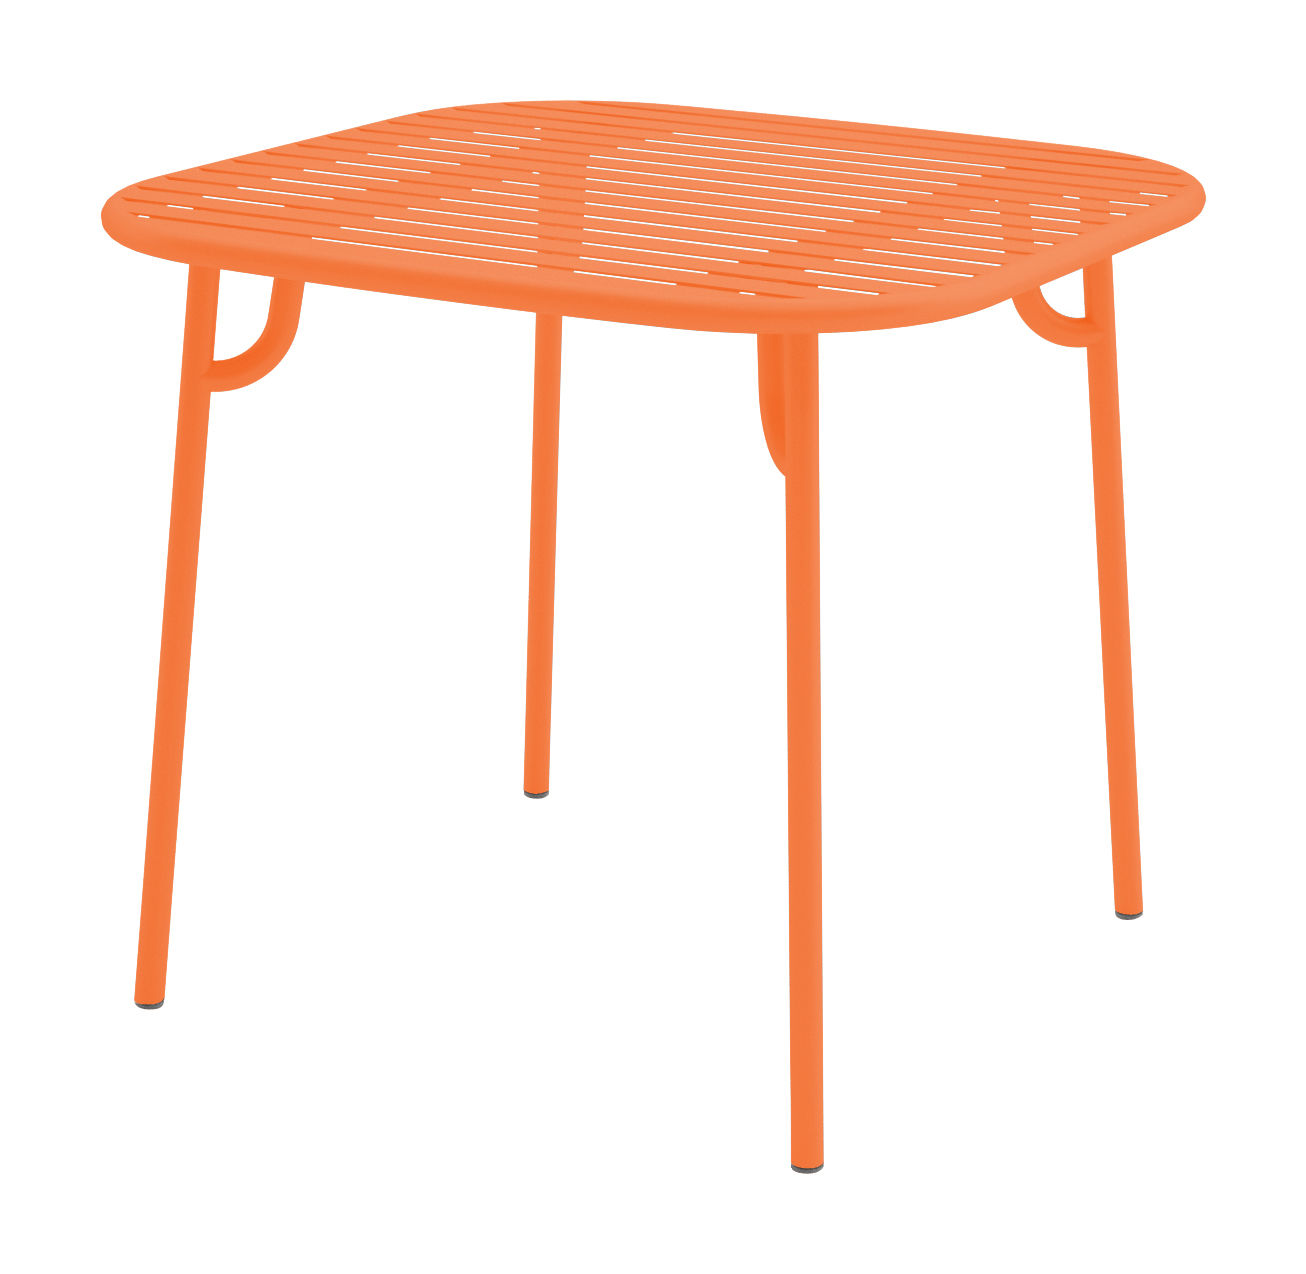 Week end table 85x85 cm orange by oxyo for Orange outdoor side table